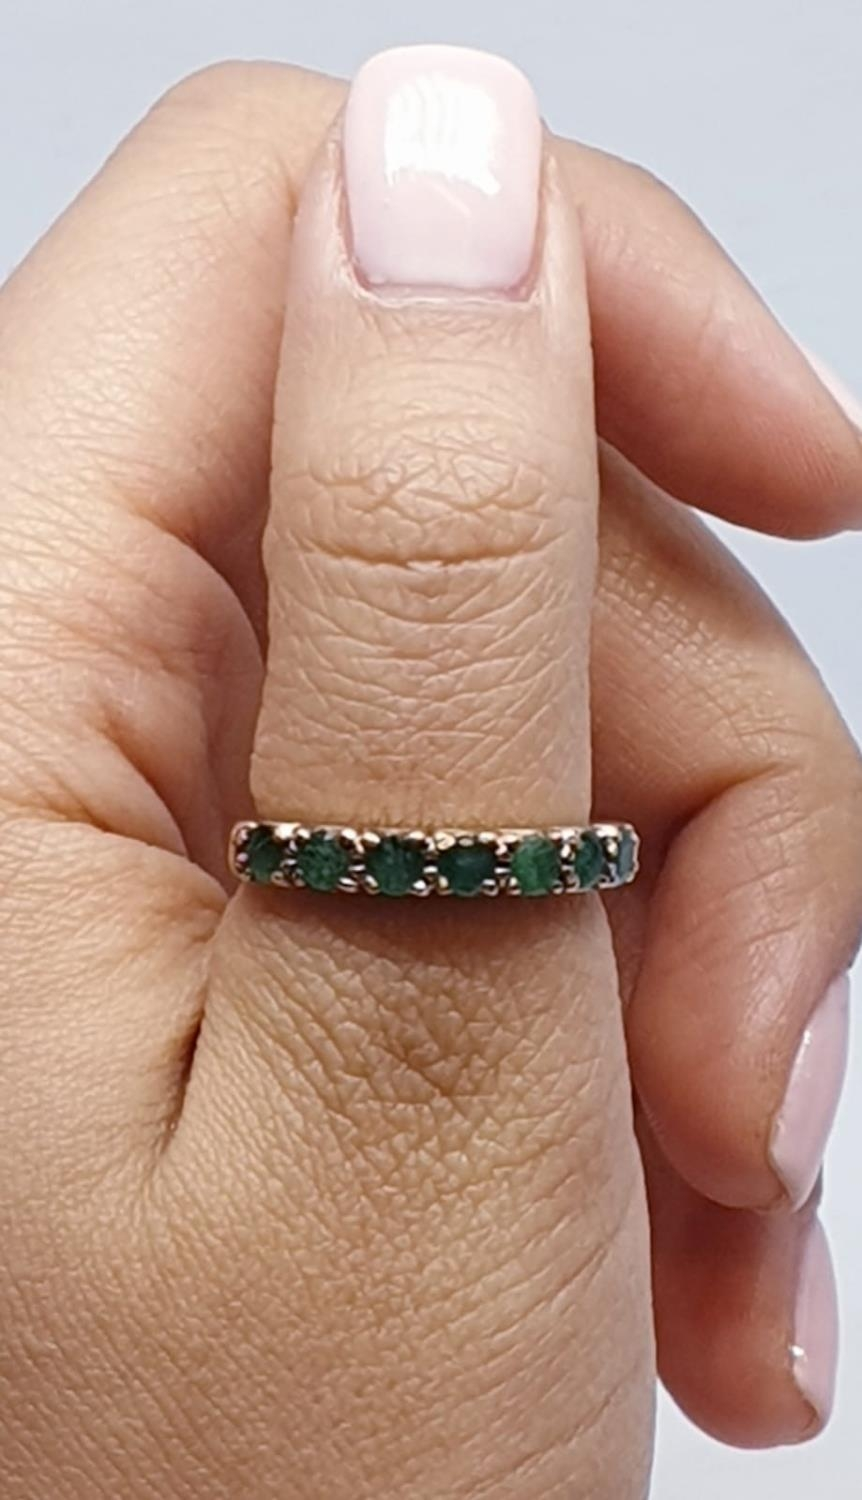 9ct Yellow gold emerald half eternity ring. Weight 2.8g, Size O. - Image 6 of 8